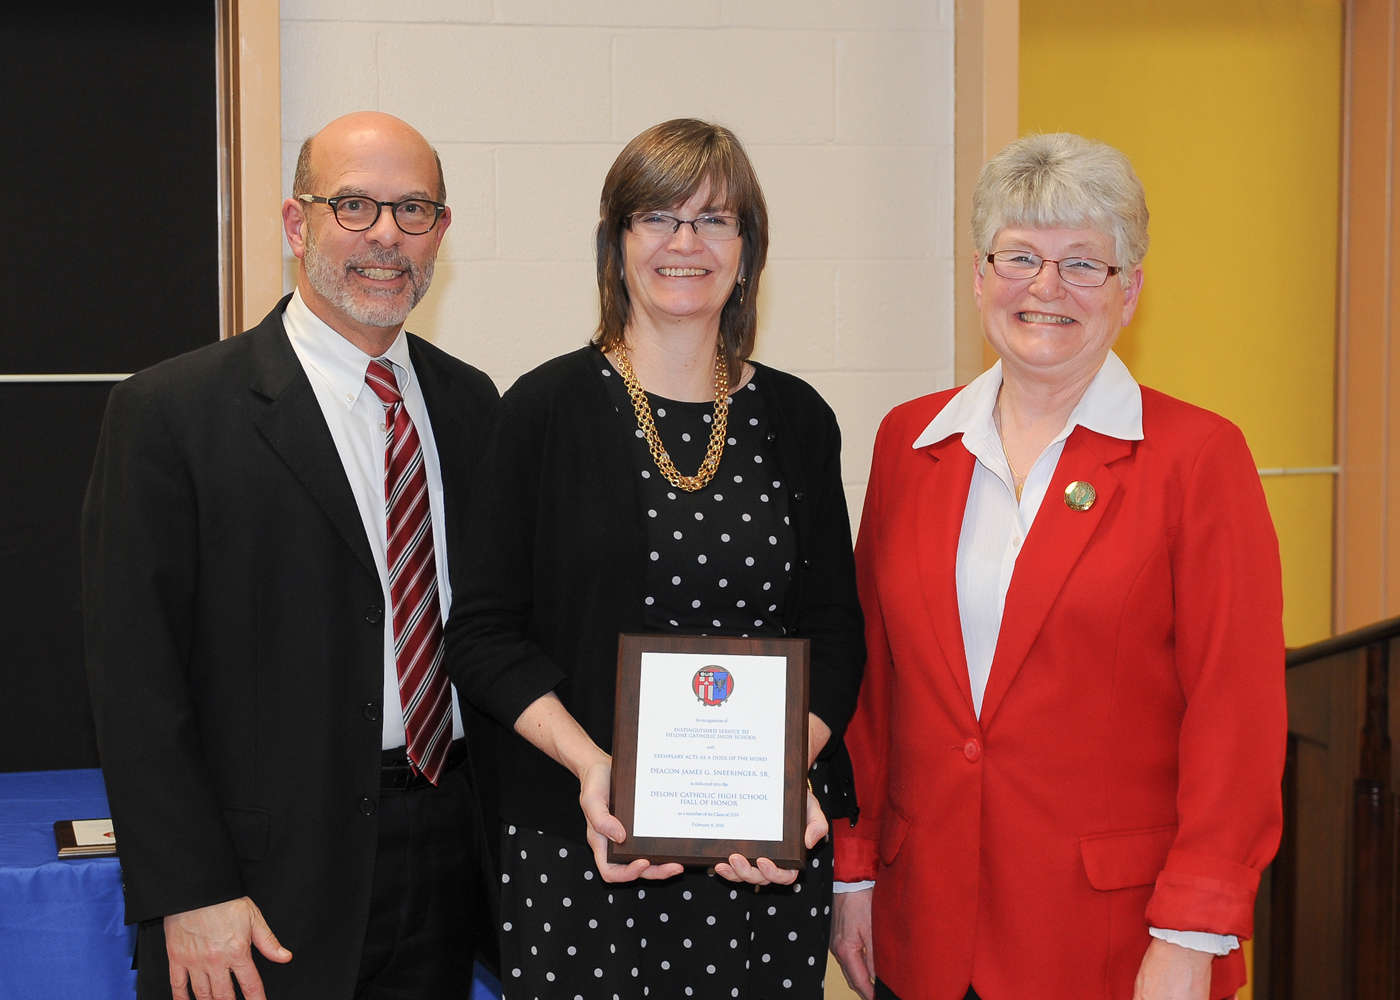 Jean M. (Sneeringer) Sedlacko '77 (center) accepts induction into the Delone Catholic Hall of Honor on behalf of her father, Deacon James G. Sneeringer, Sr.